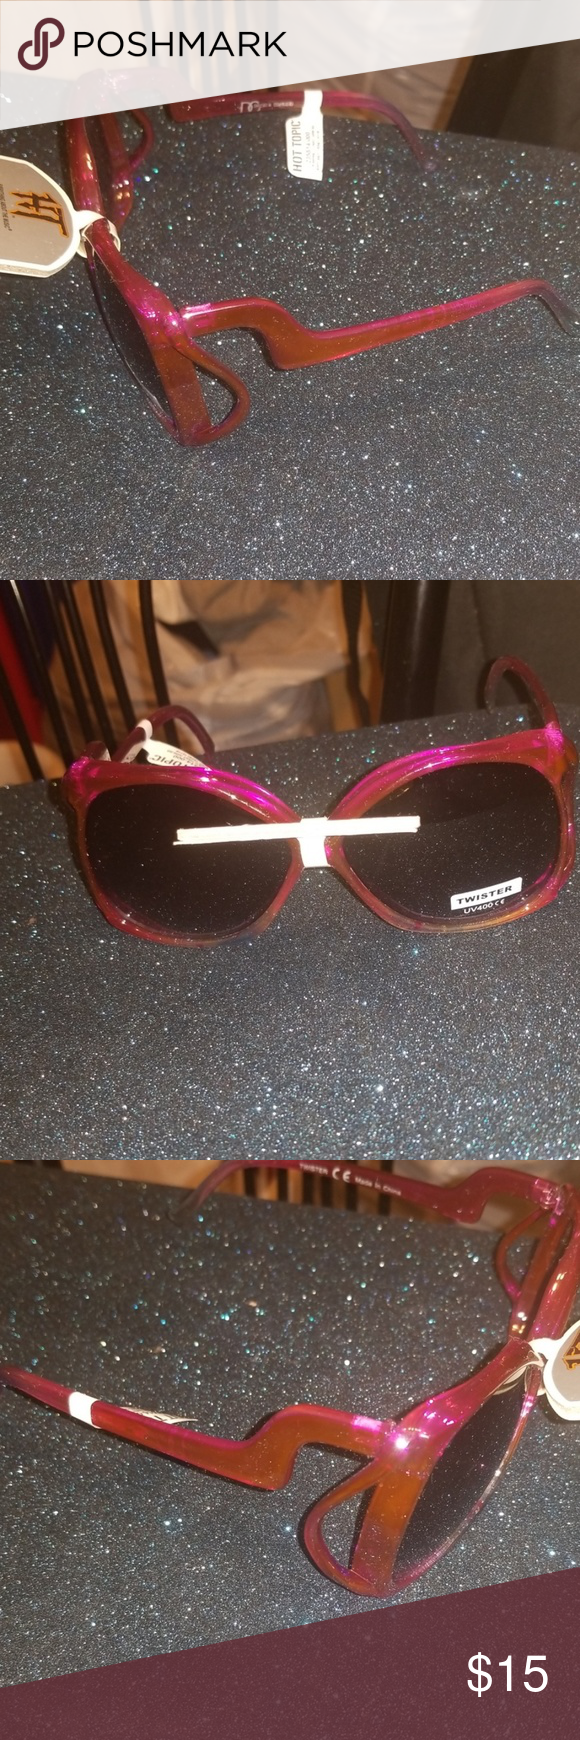 d5b02f2c98b4 Hot Topic Zig Zag Purple Sunglasses w.Free Case Every pair of glasses  bought from us comes with a free hard canvas zip up case.